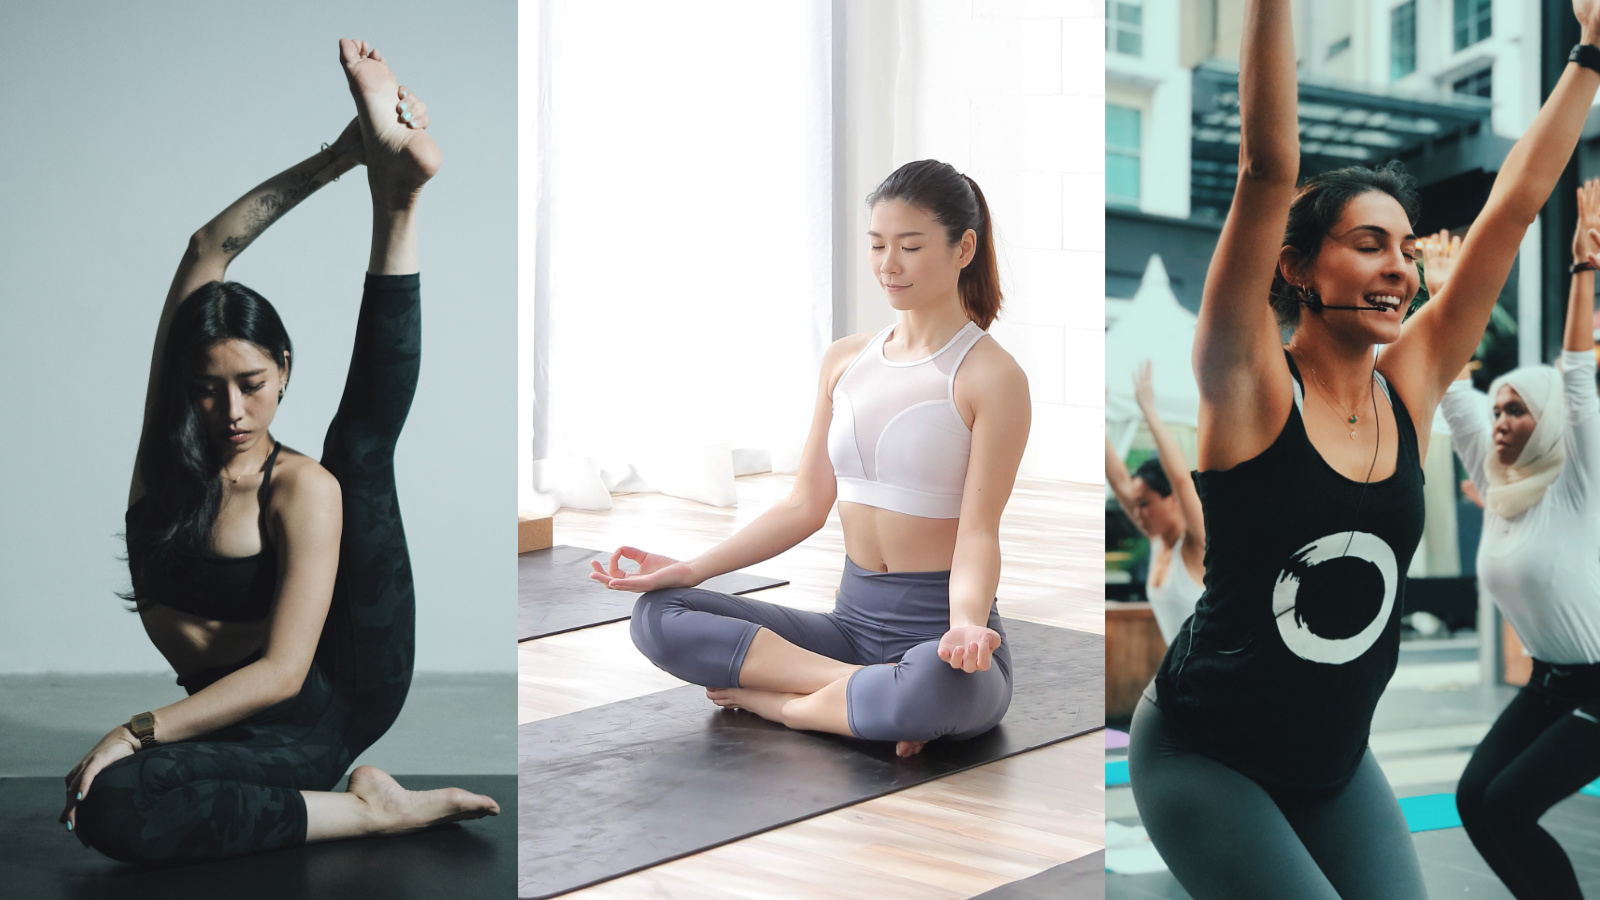 The 6 Best Yoga Teachers In Malaysia For 2020 To Help Your Run